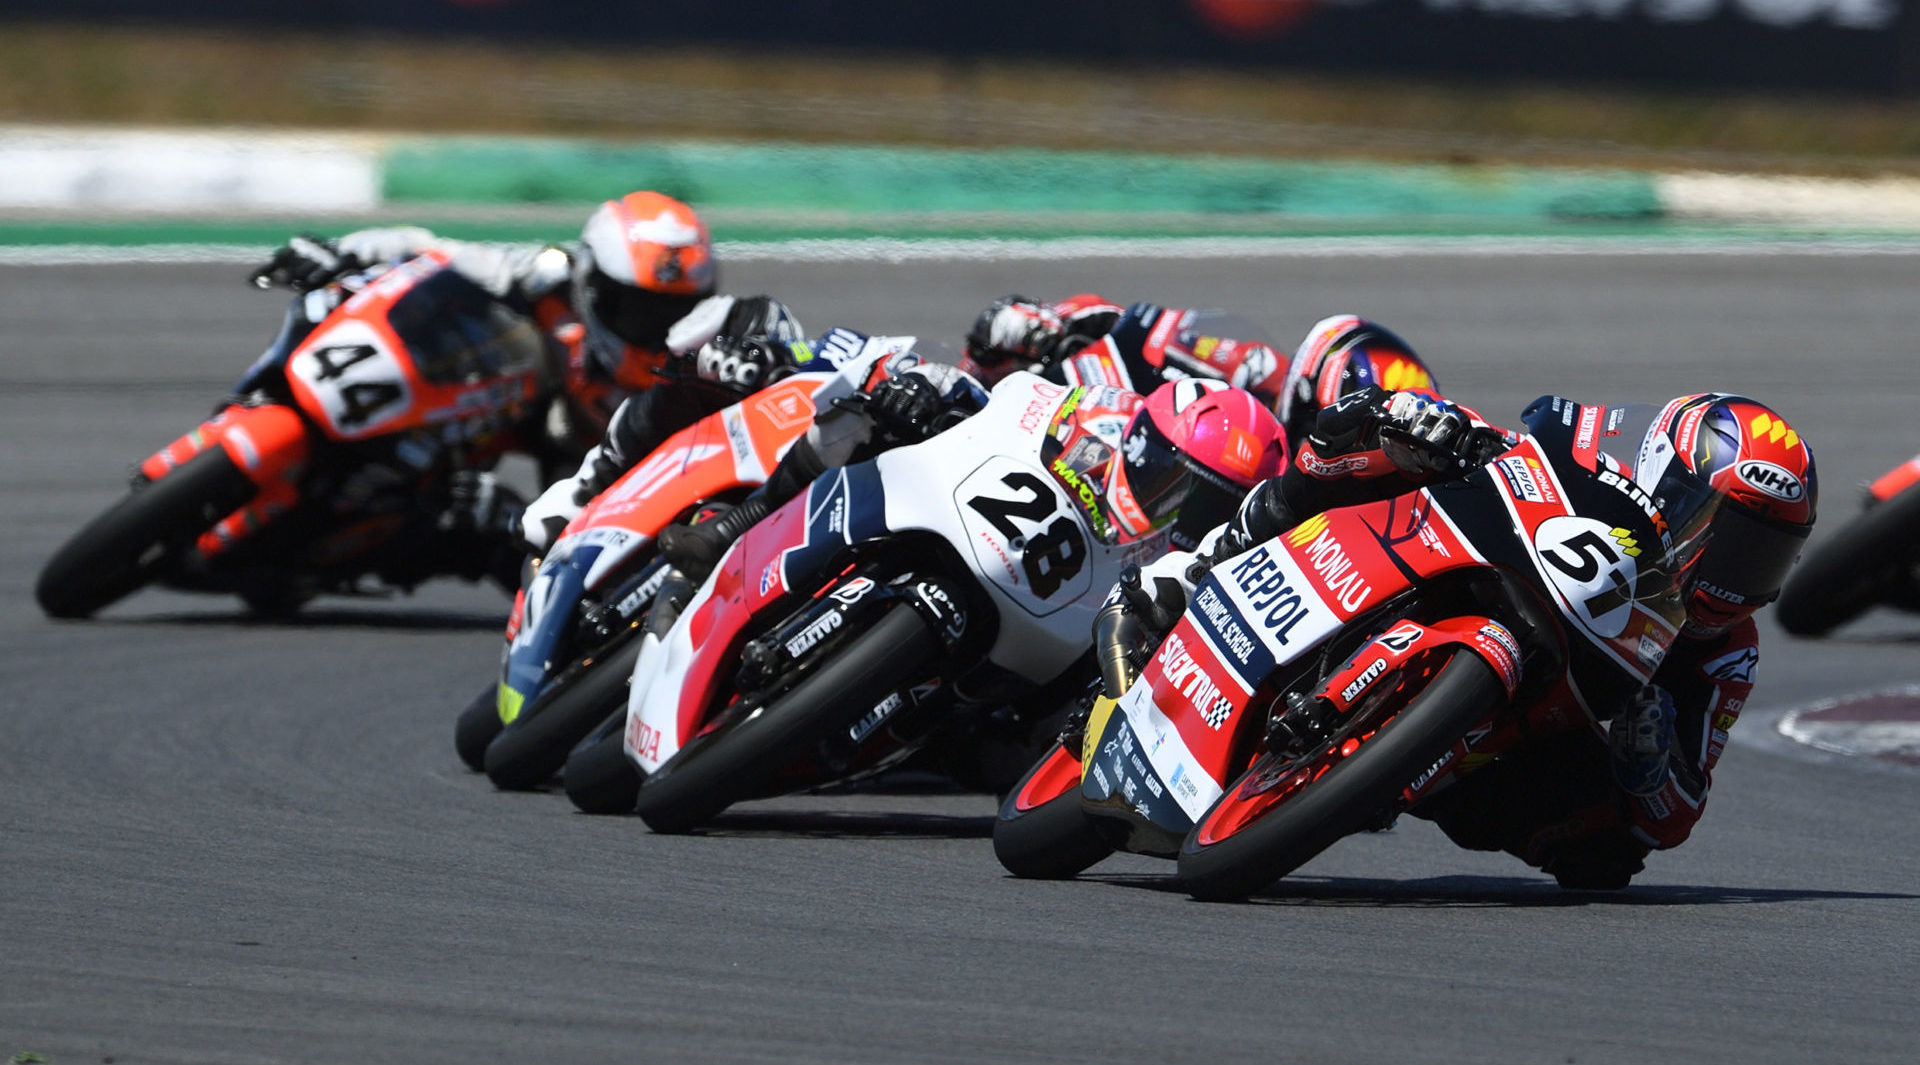 Brian Uriarte (51) leads Maximo Martinez (28) and a group of other riders during the Hawkers European Talent Cup race in Portugal. Photo courtesy FIM CEV Repsol Press Office.